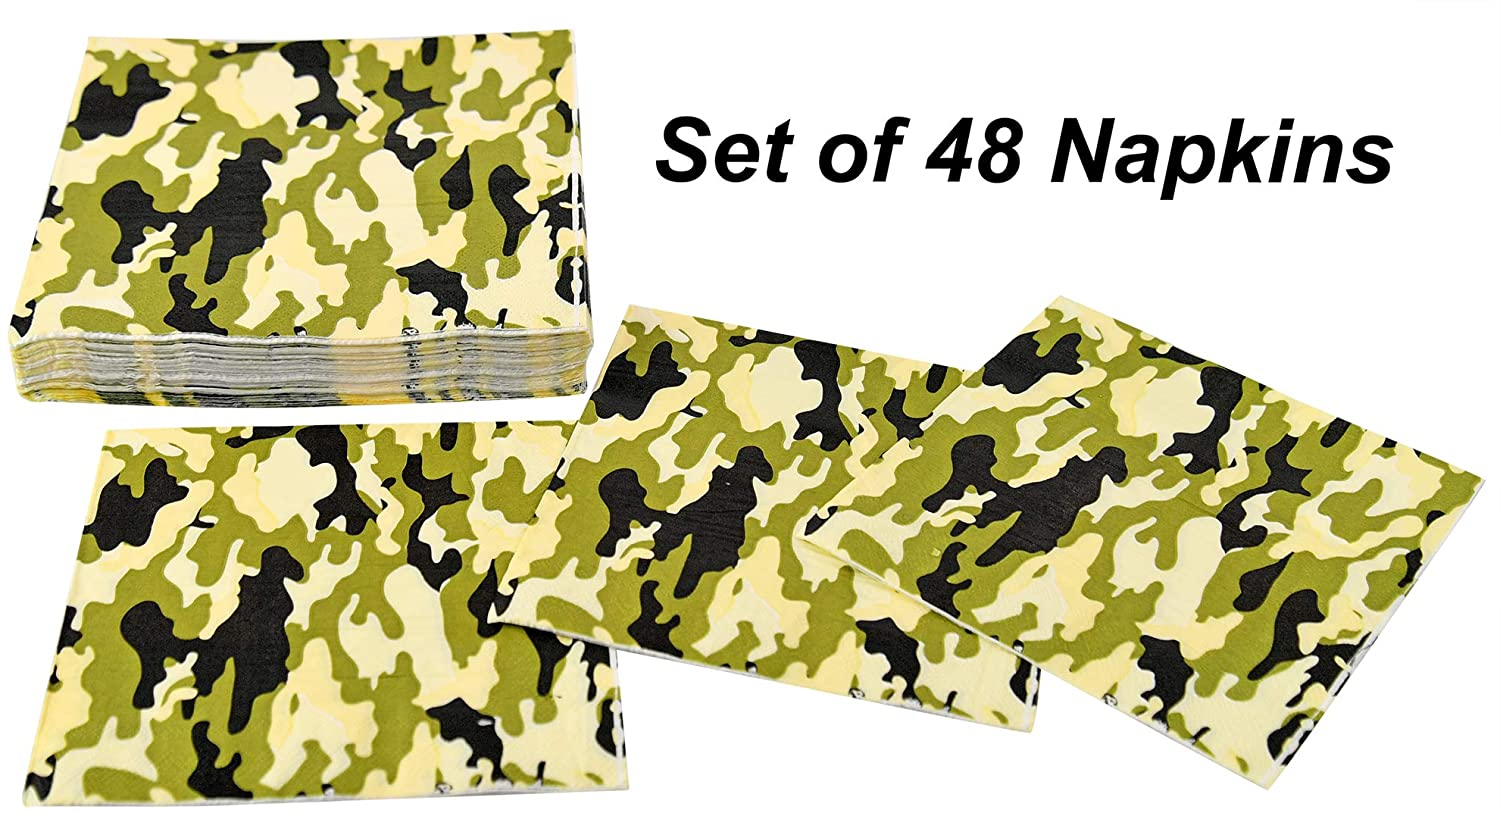 HOME-X Camouflage Square Disposable Party Napkins, 48 Count- 6.5